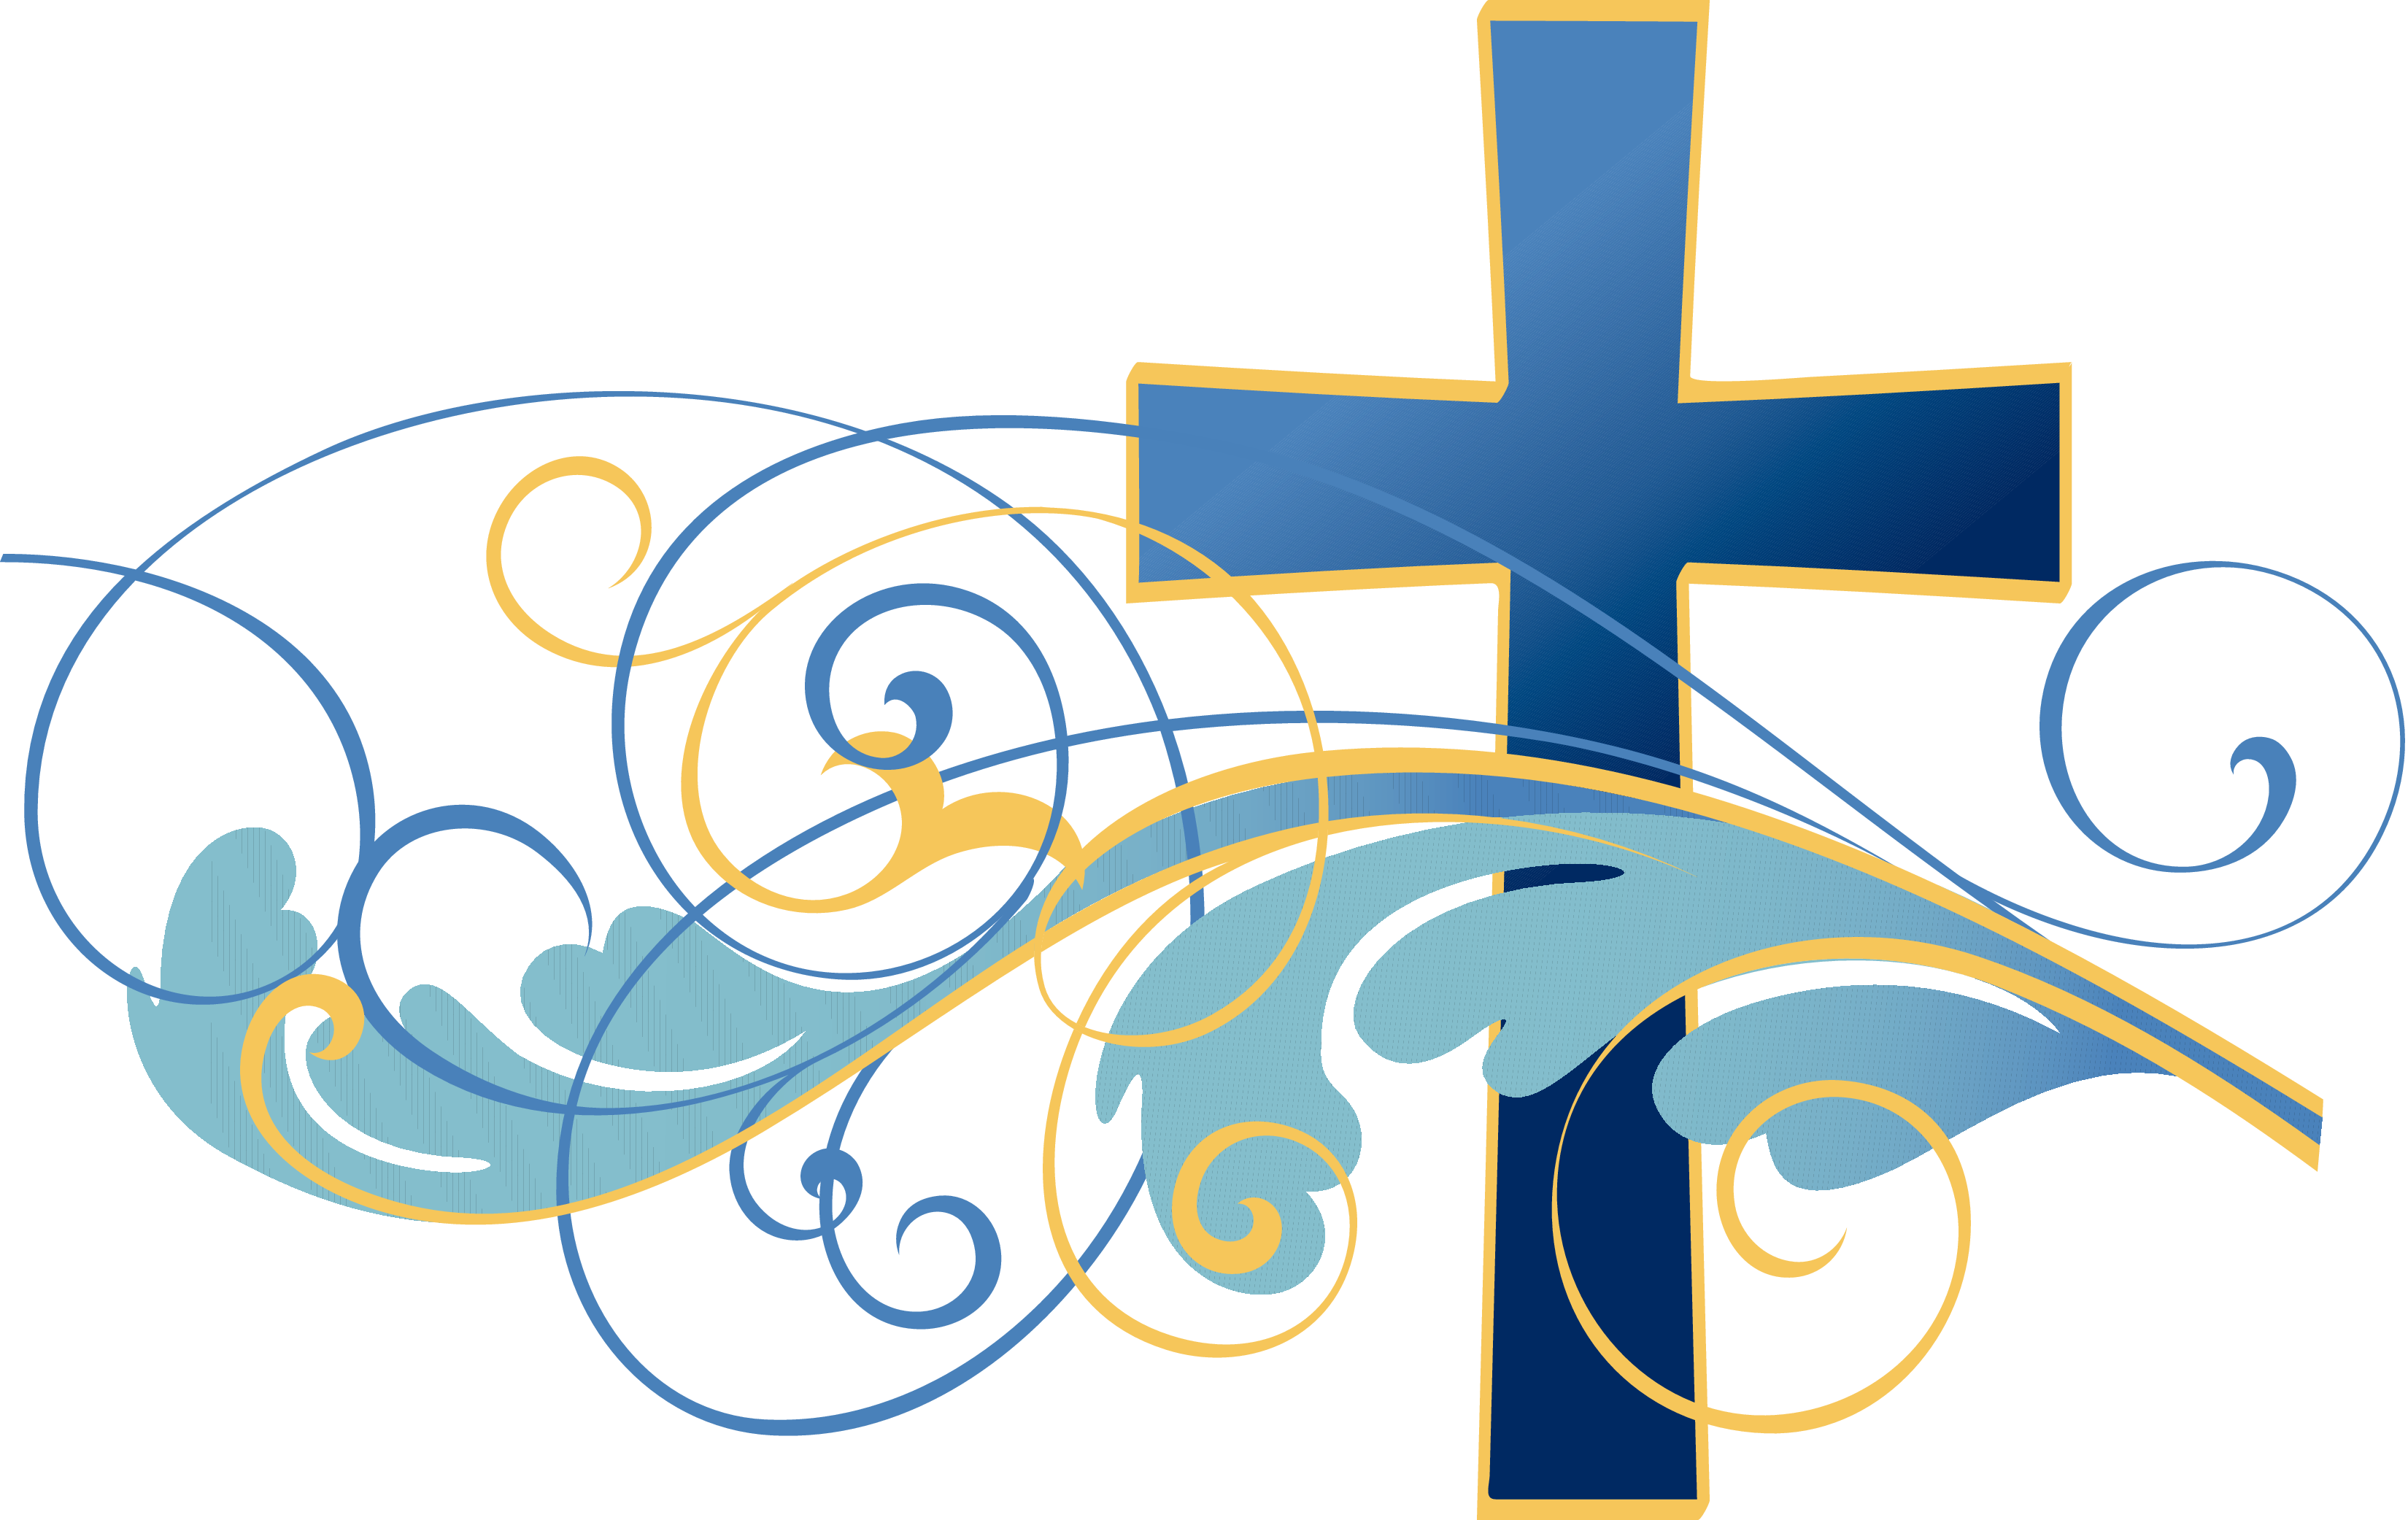 Faith clipart prayer service. Designed by the top